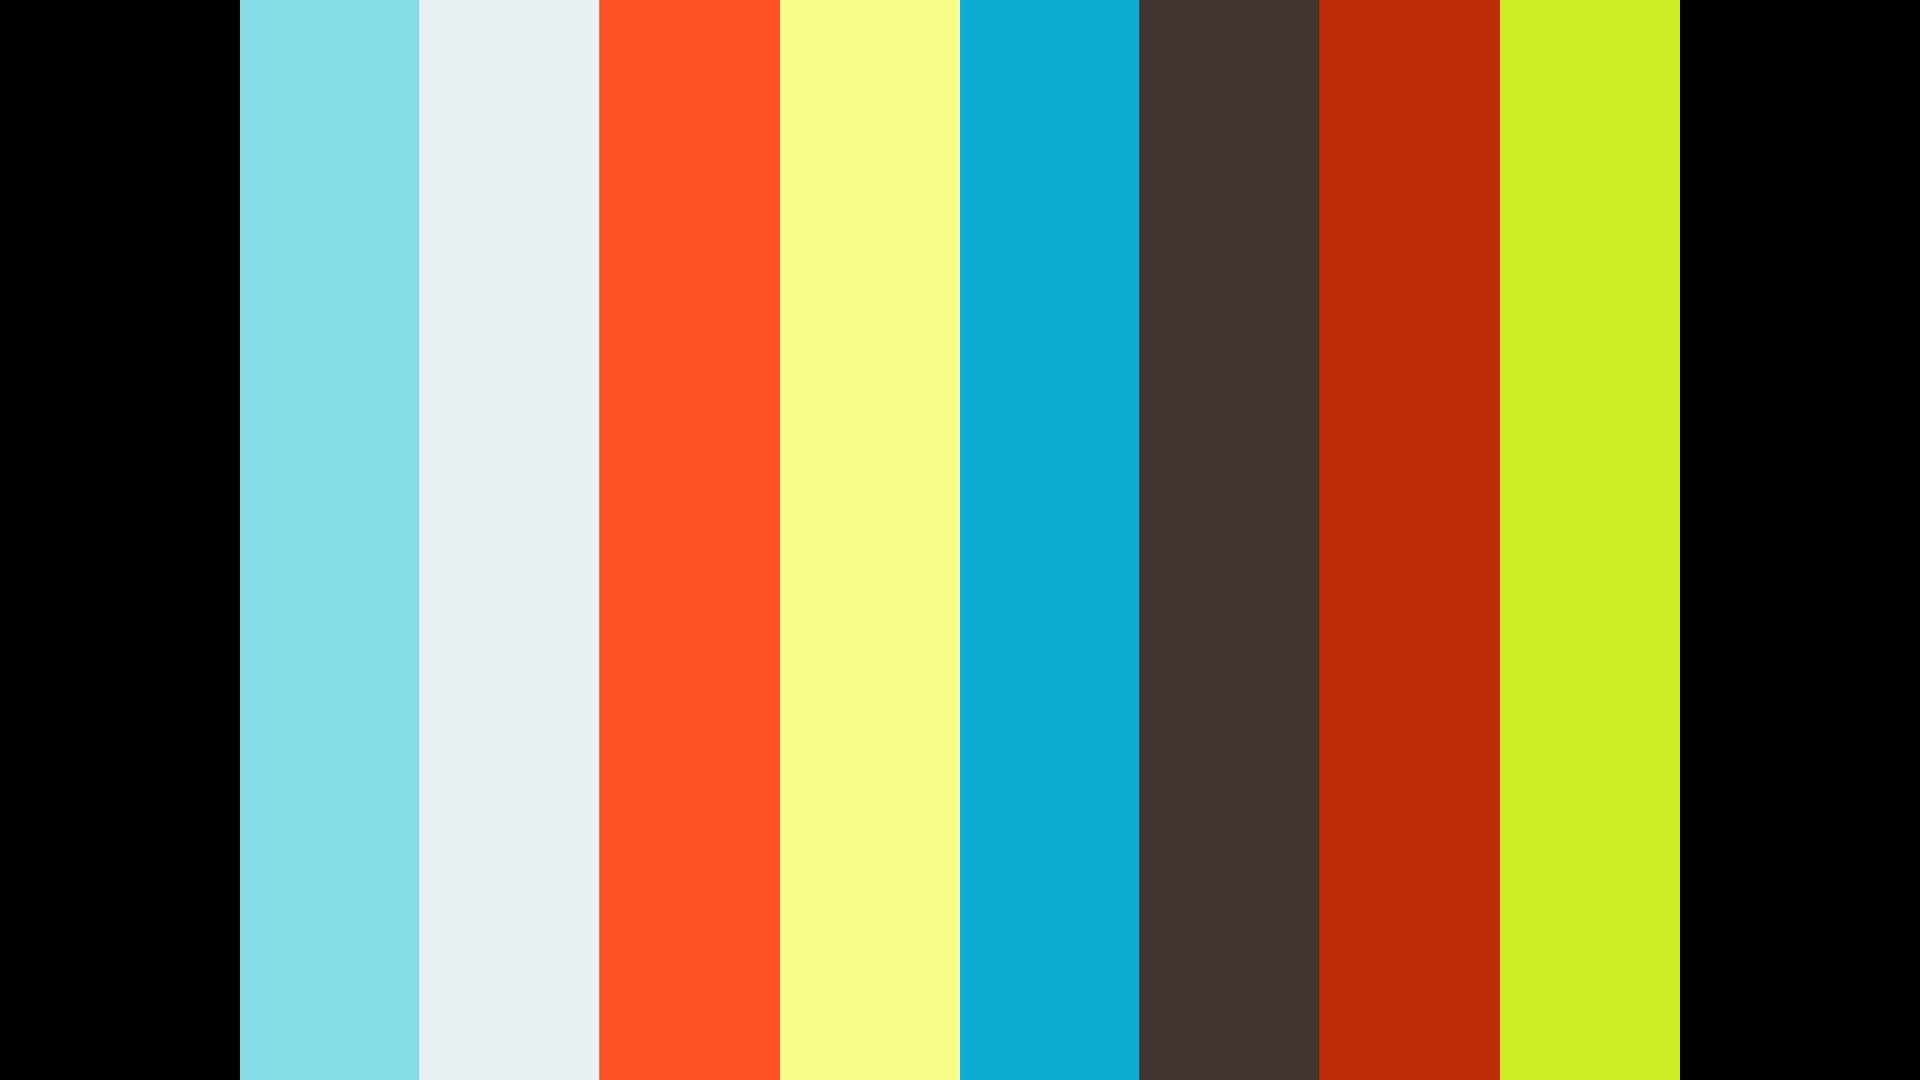 Faith's Journey: A Call to Action (September 8, 2019)